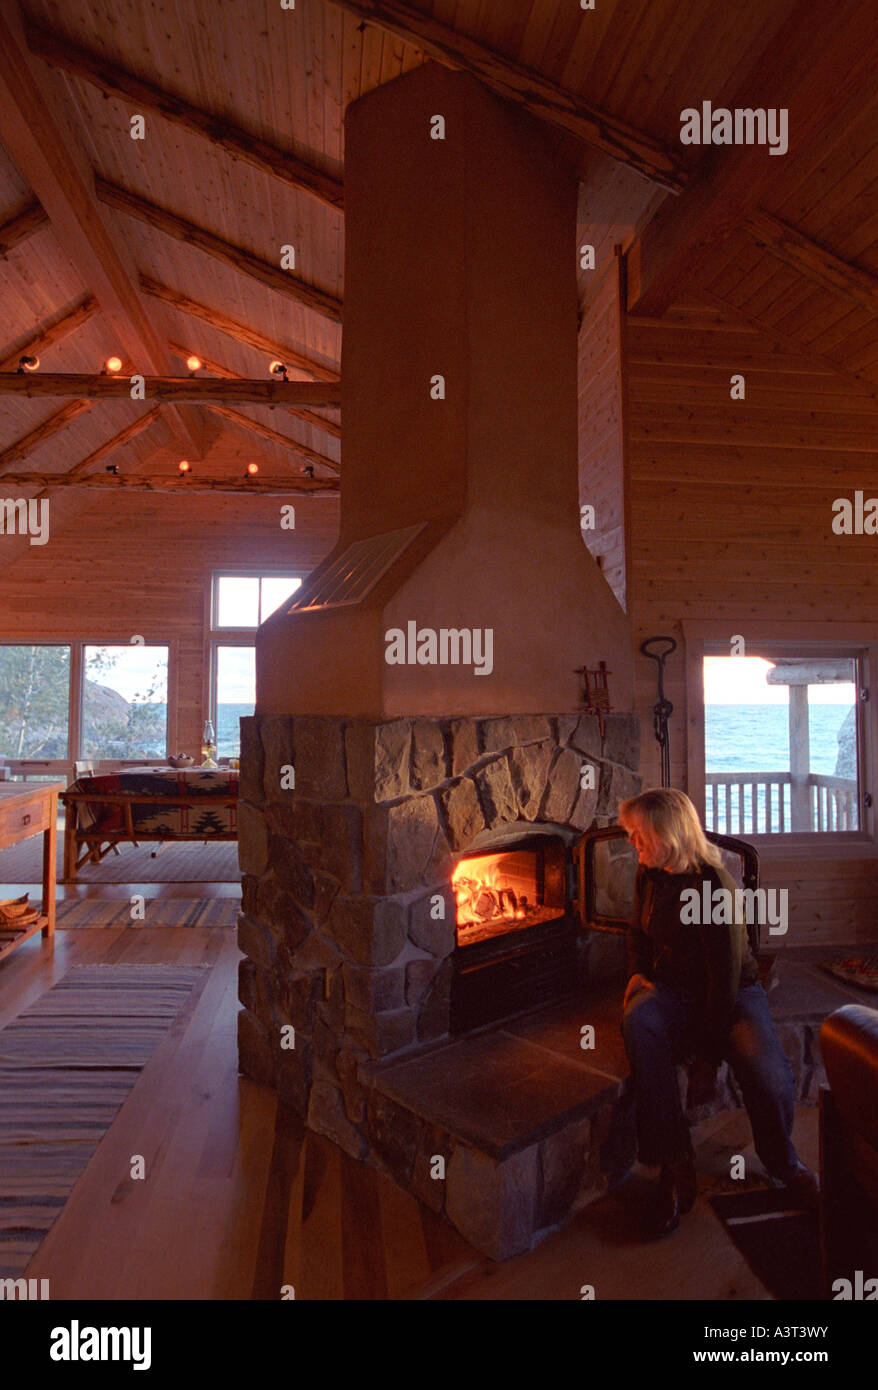 phyllis berg pigorsch fires up the custom fireplace in her lake rh alamy com custom fireplace the forest